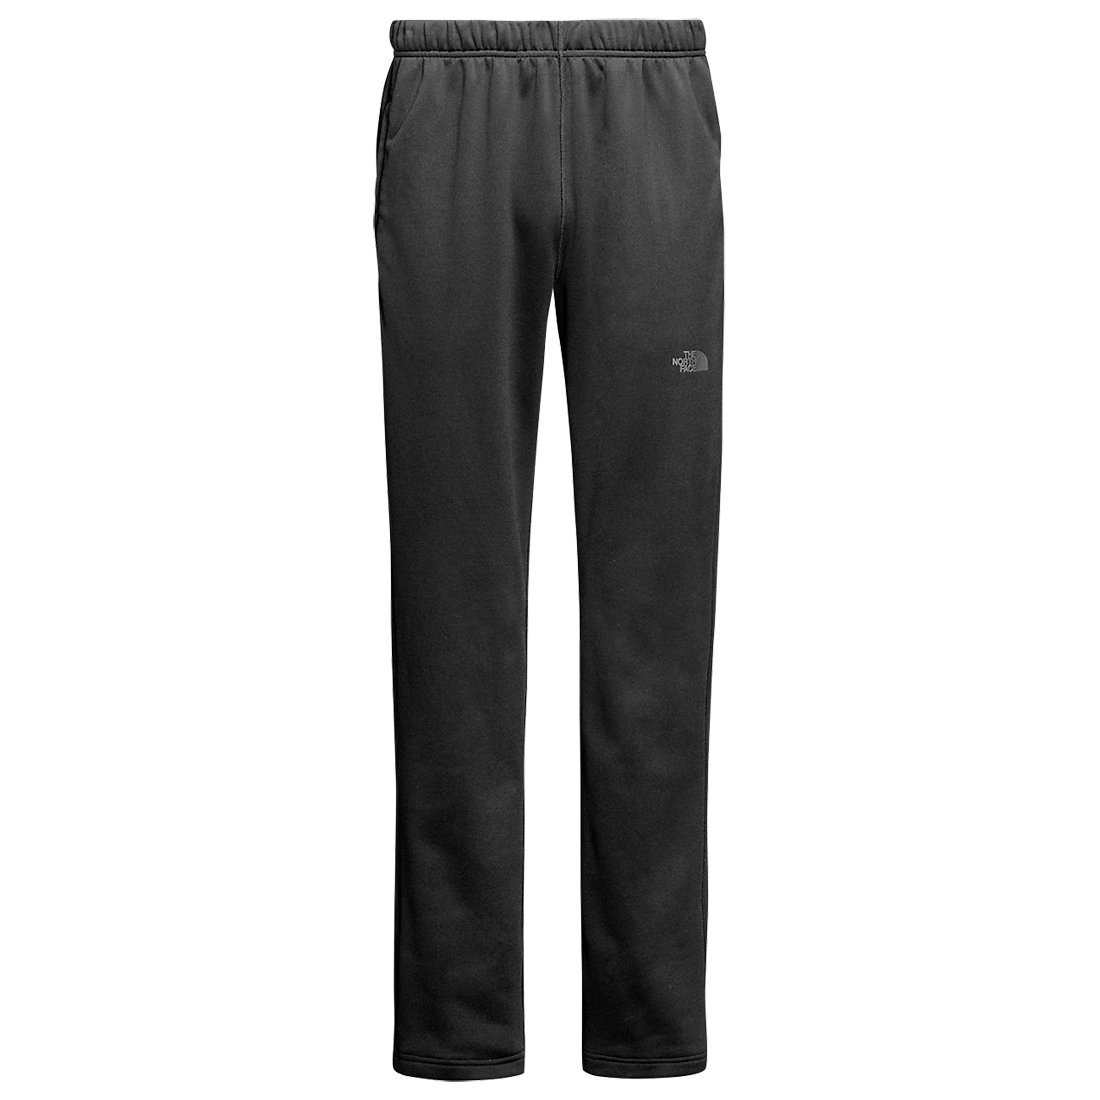 North Face Surgent Pants